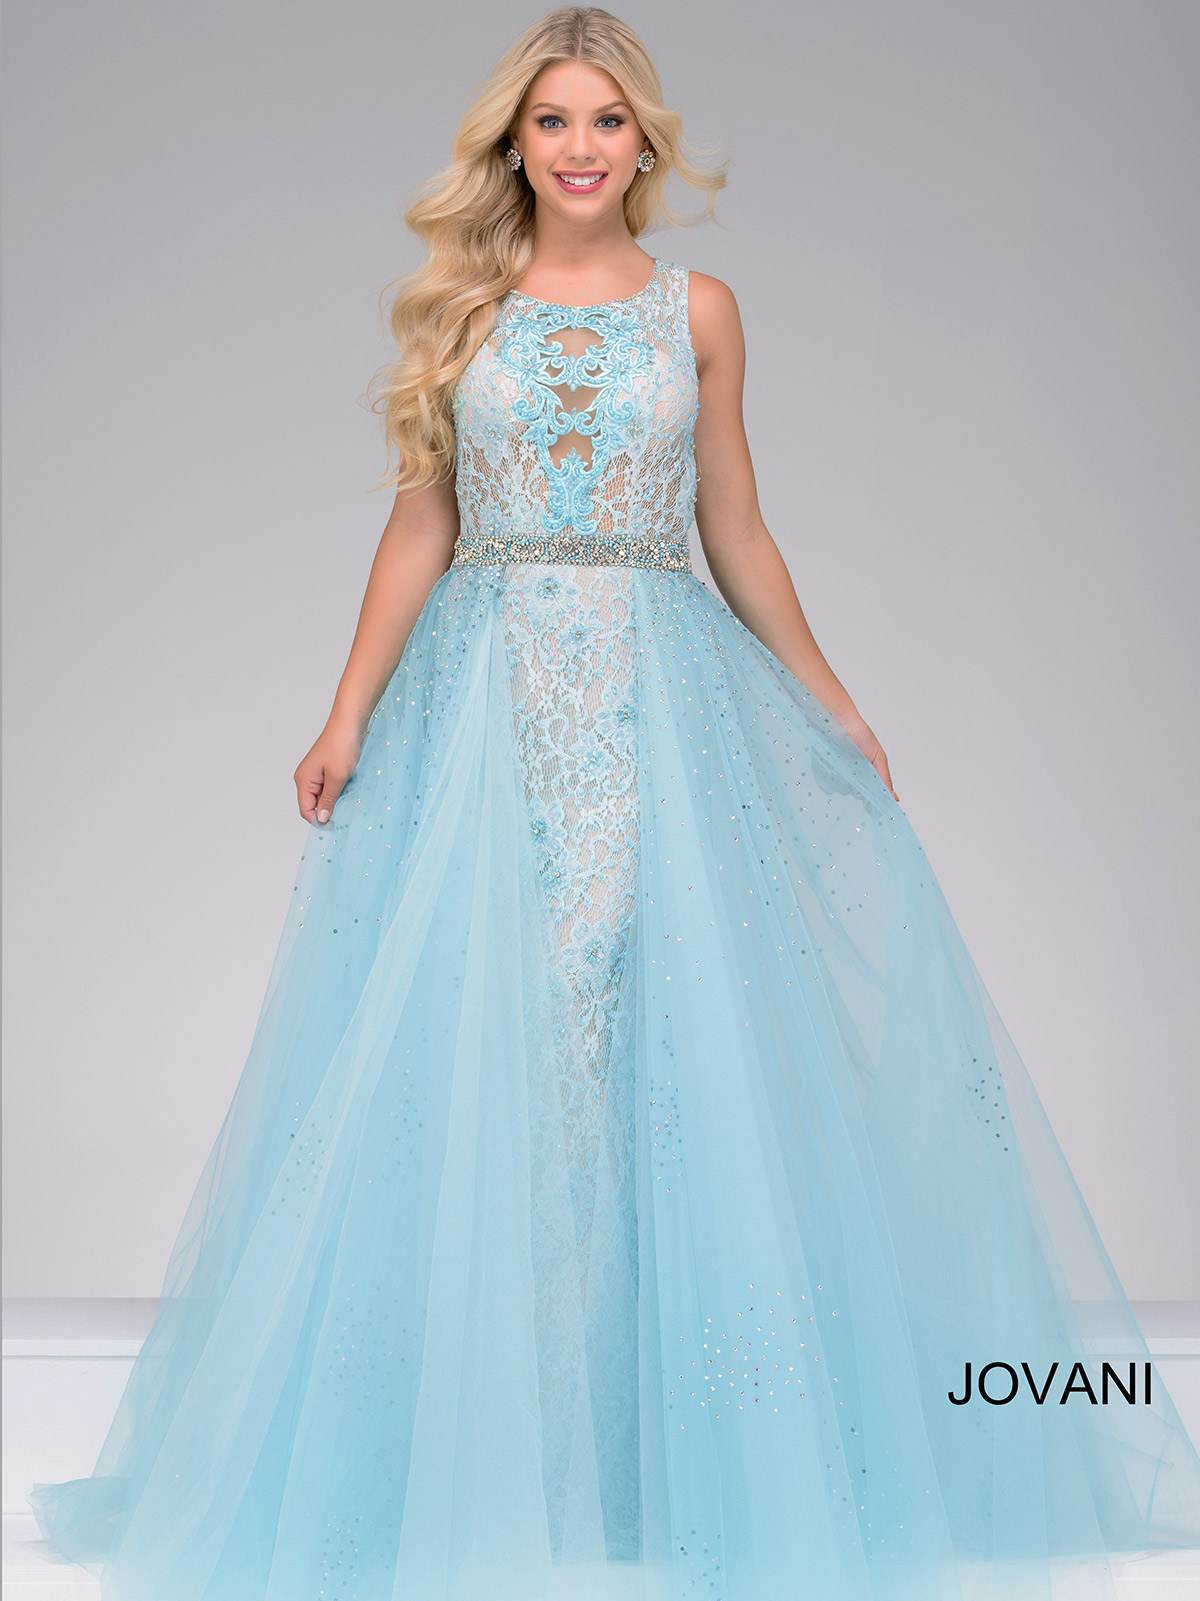 Jovani 36805 Lace Tulle Pageant Dress|PageantDesigns.com